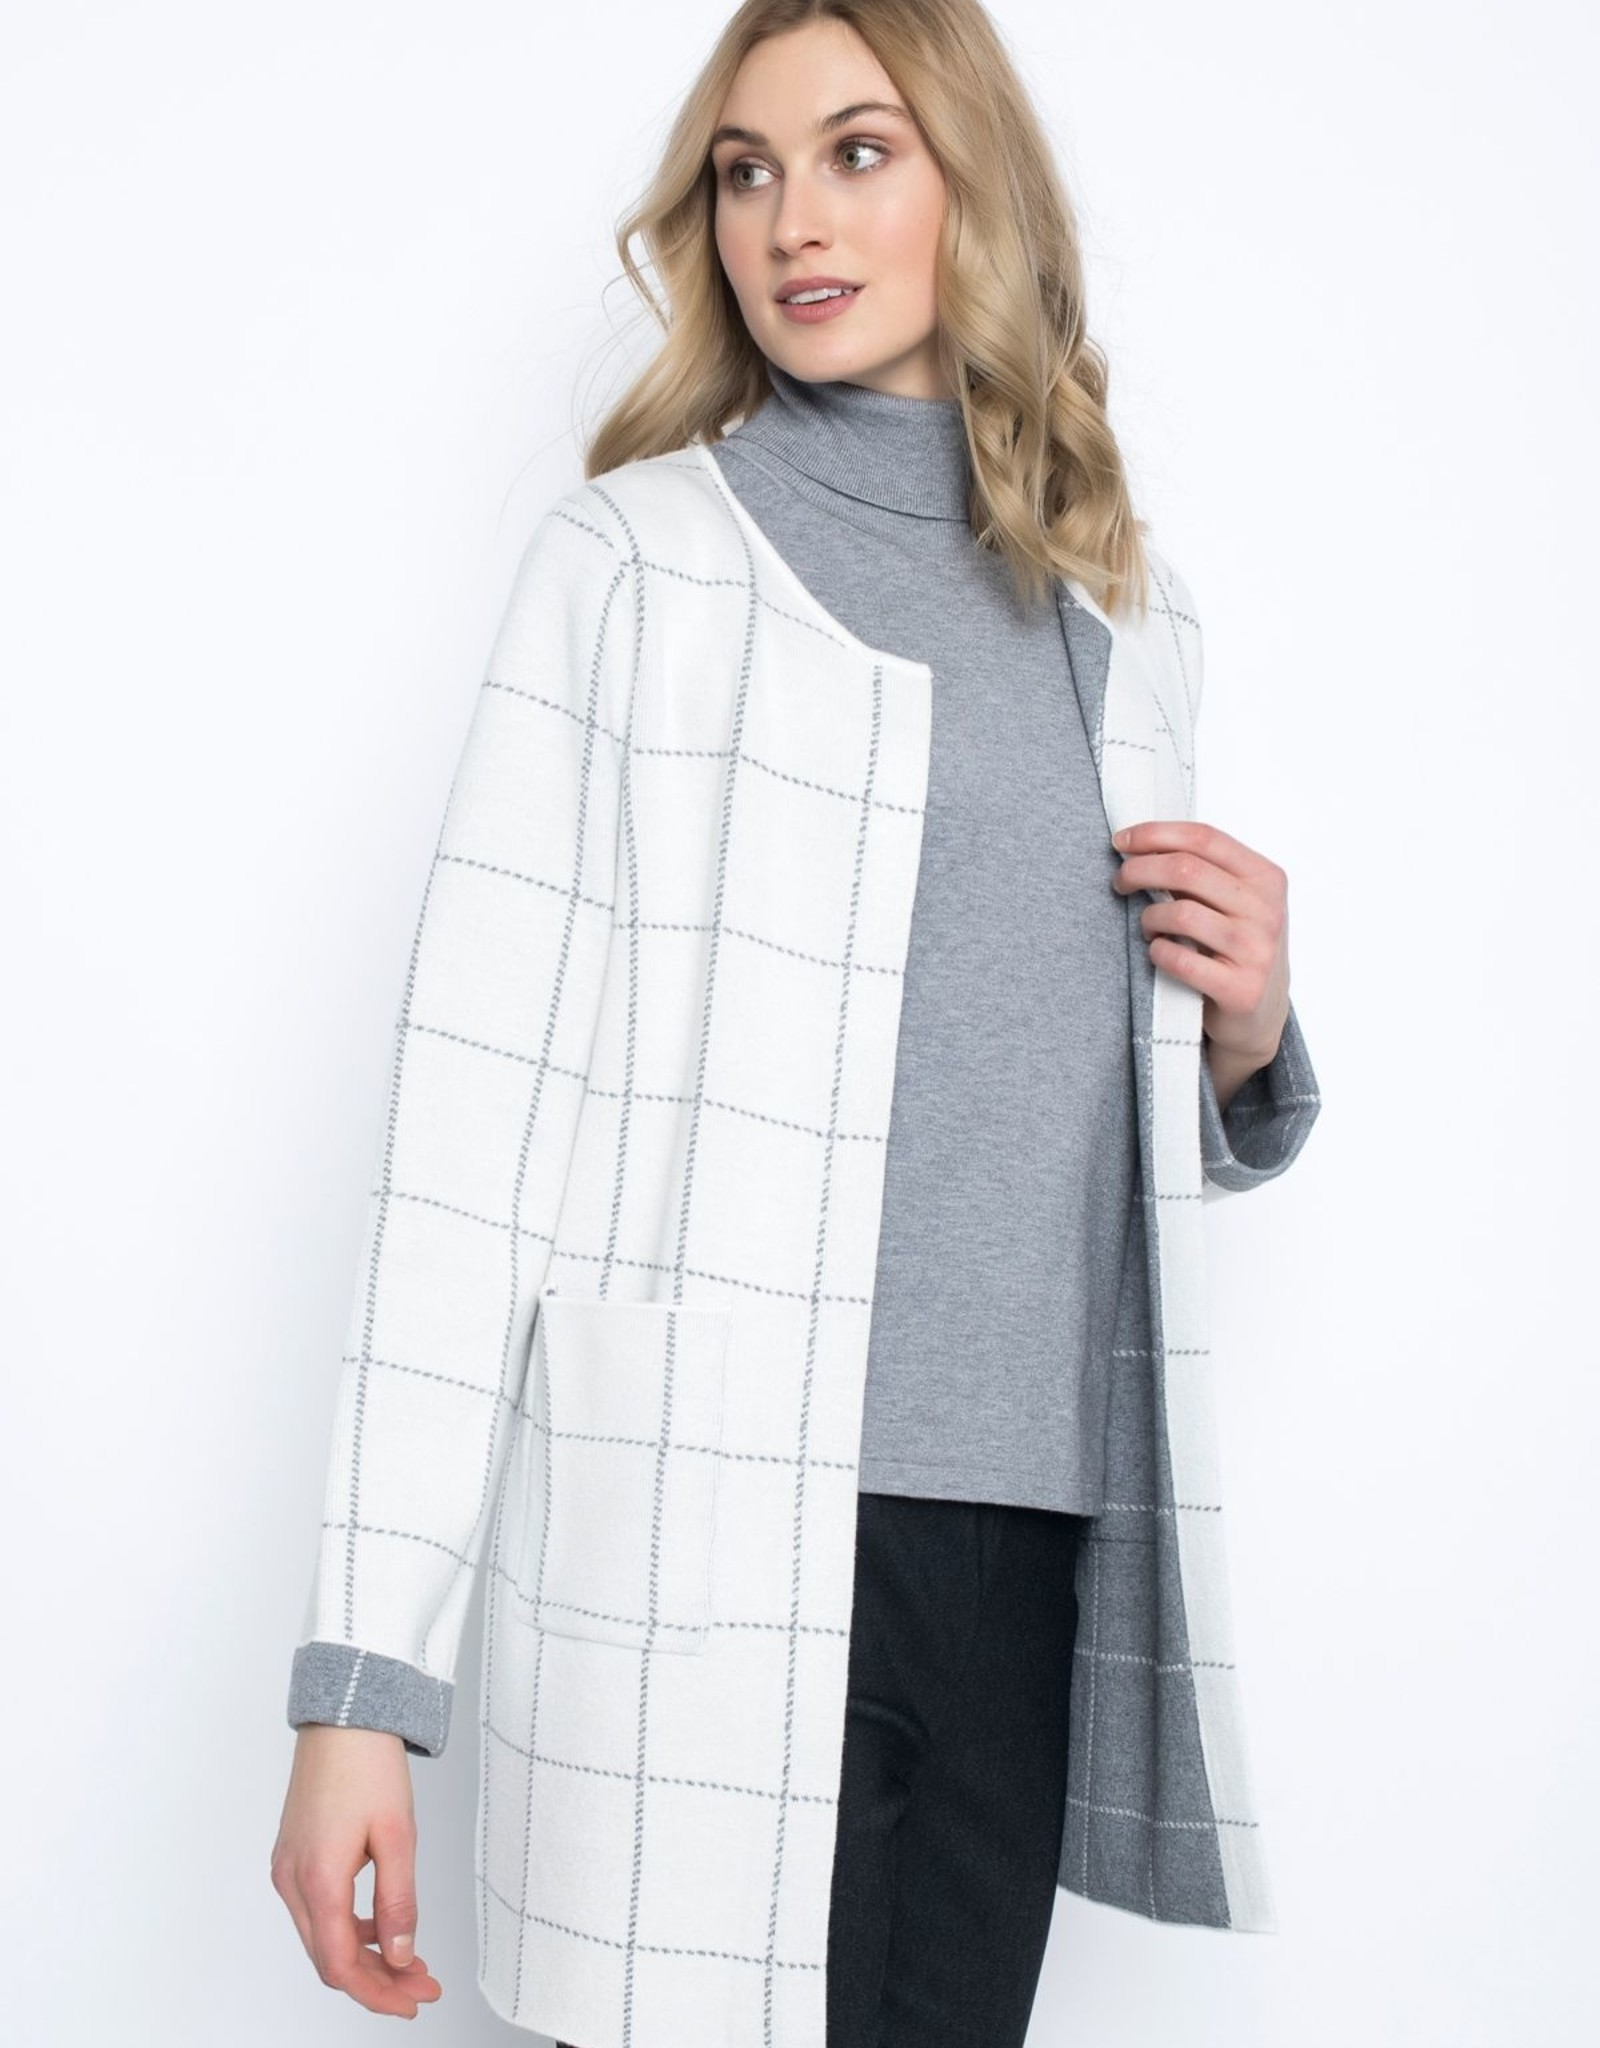 Picadilly Picadilly RK537OR Long Open Cardigan with Closure at the Neckline and Pockets Grid Pattern